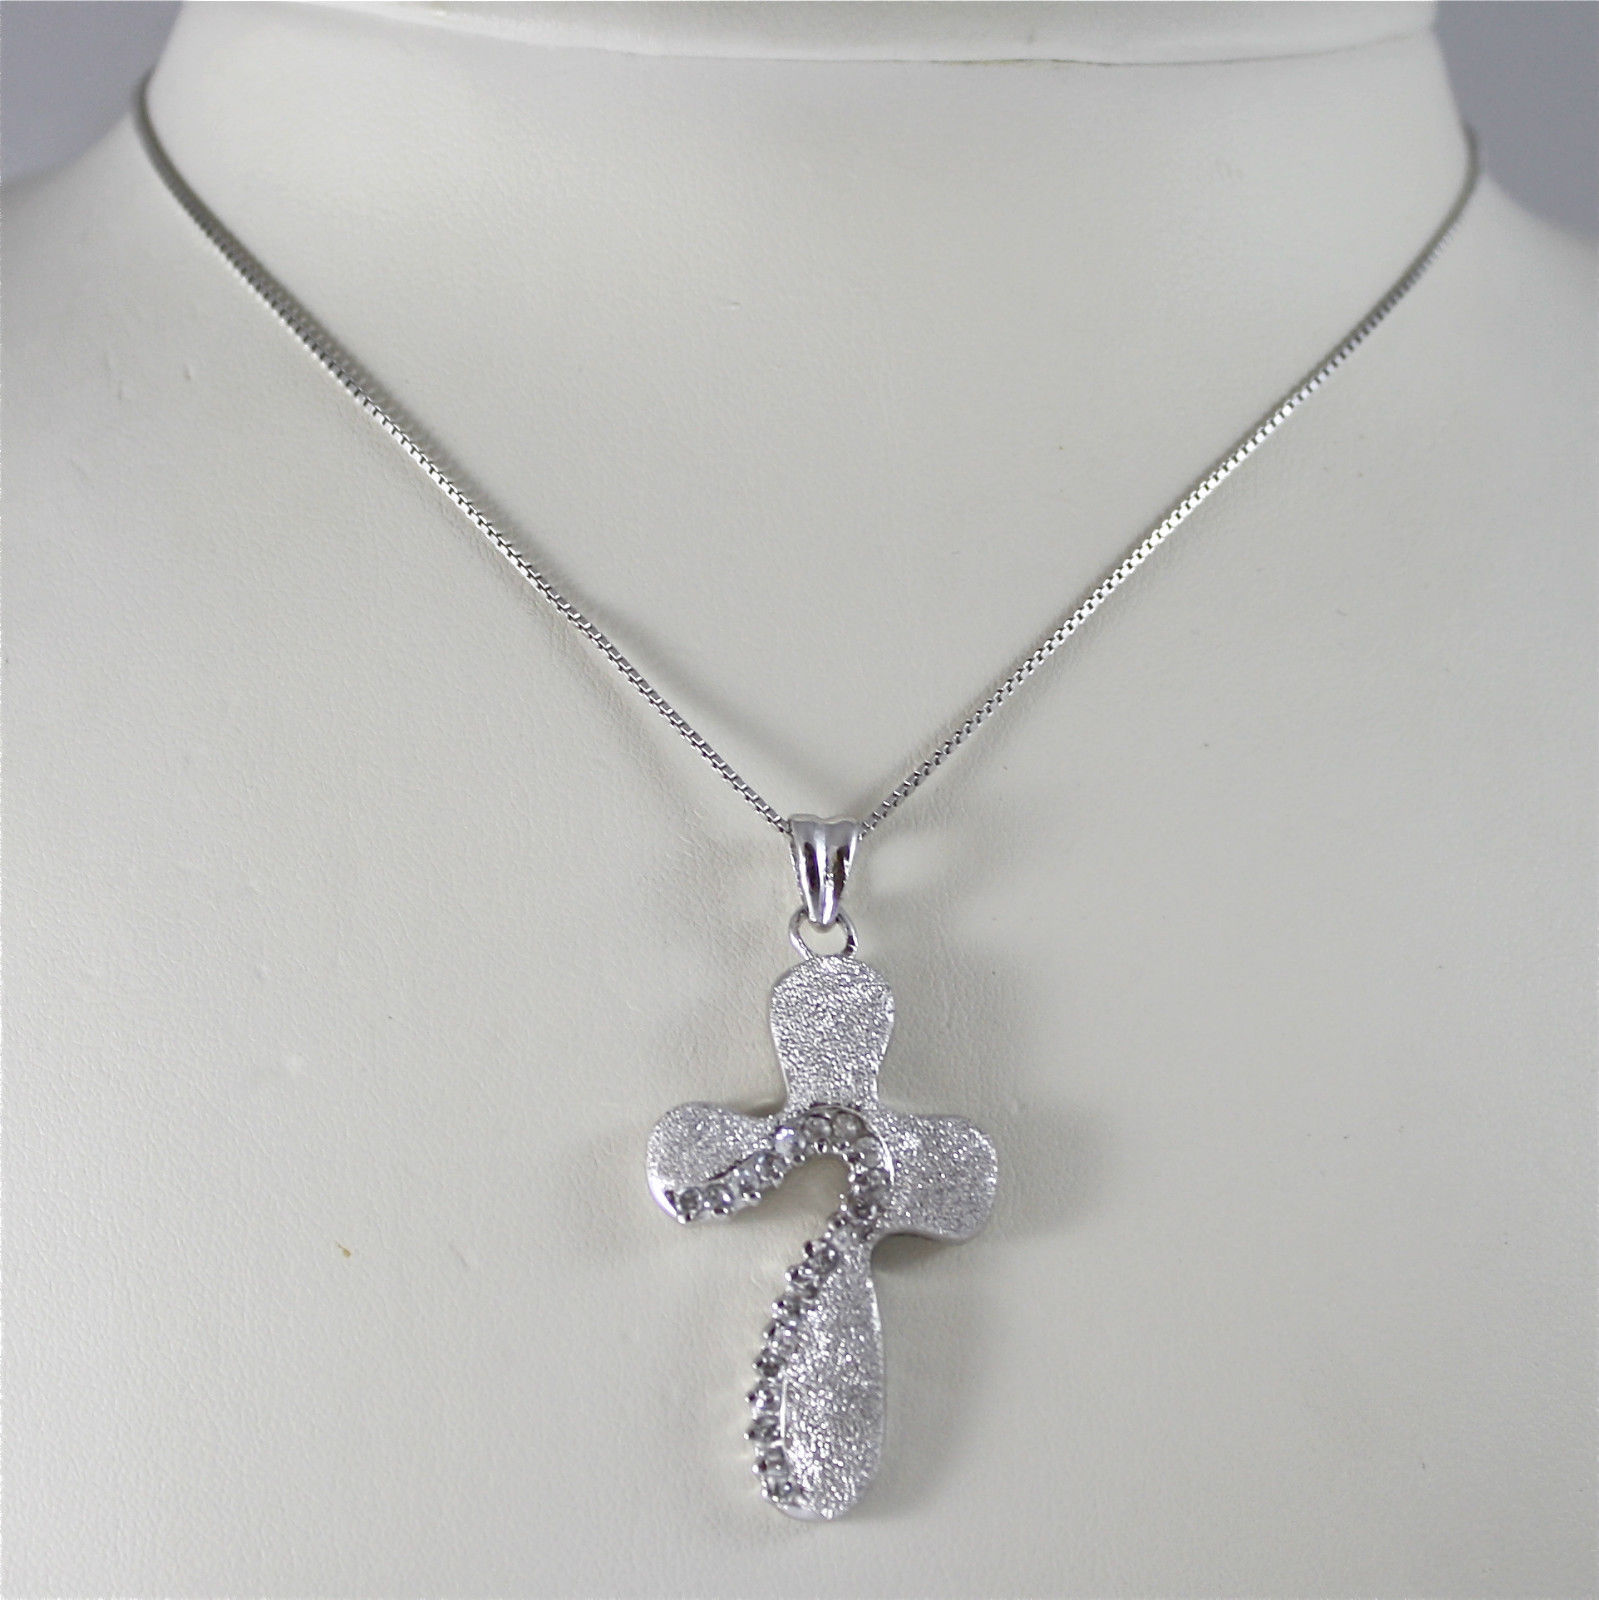 COLLANA IN ARGENTO 925 RODIATO, CROCE DIAMANTATA CON CRISTALLI INCASSATI